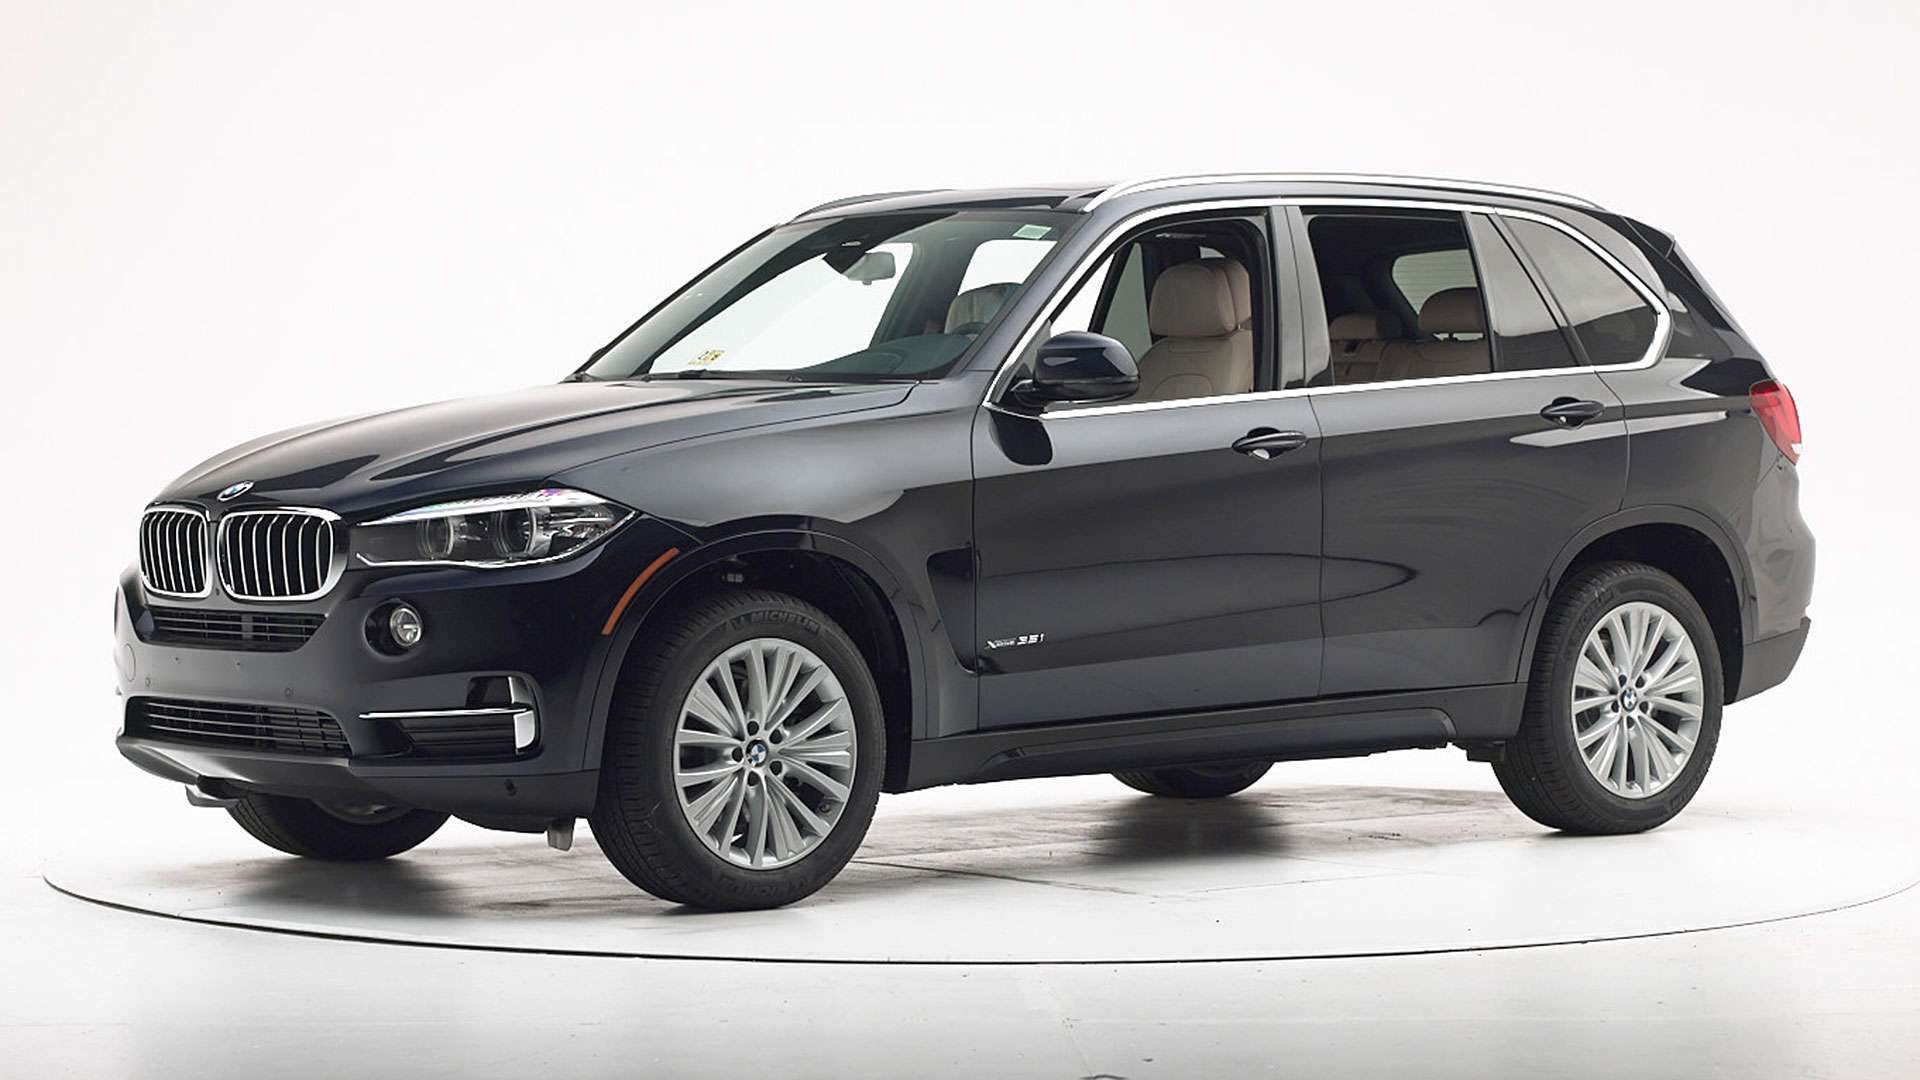 2017 BMW X5 4-door SUV